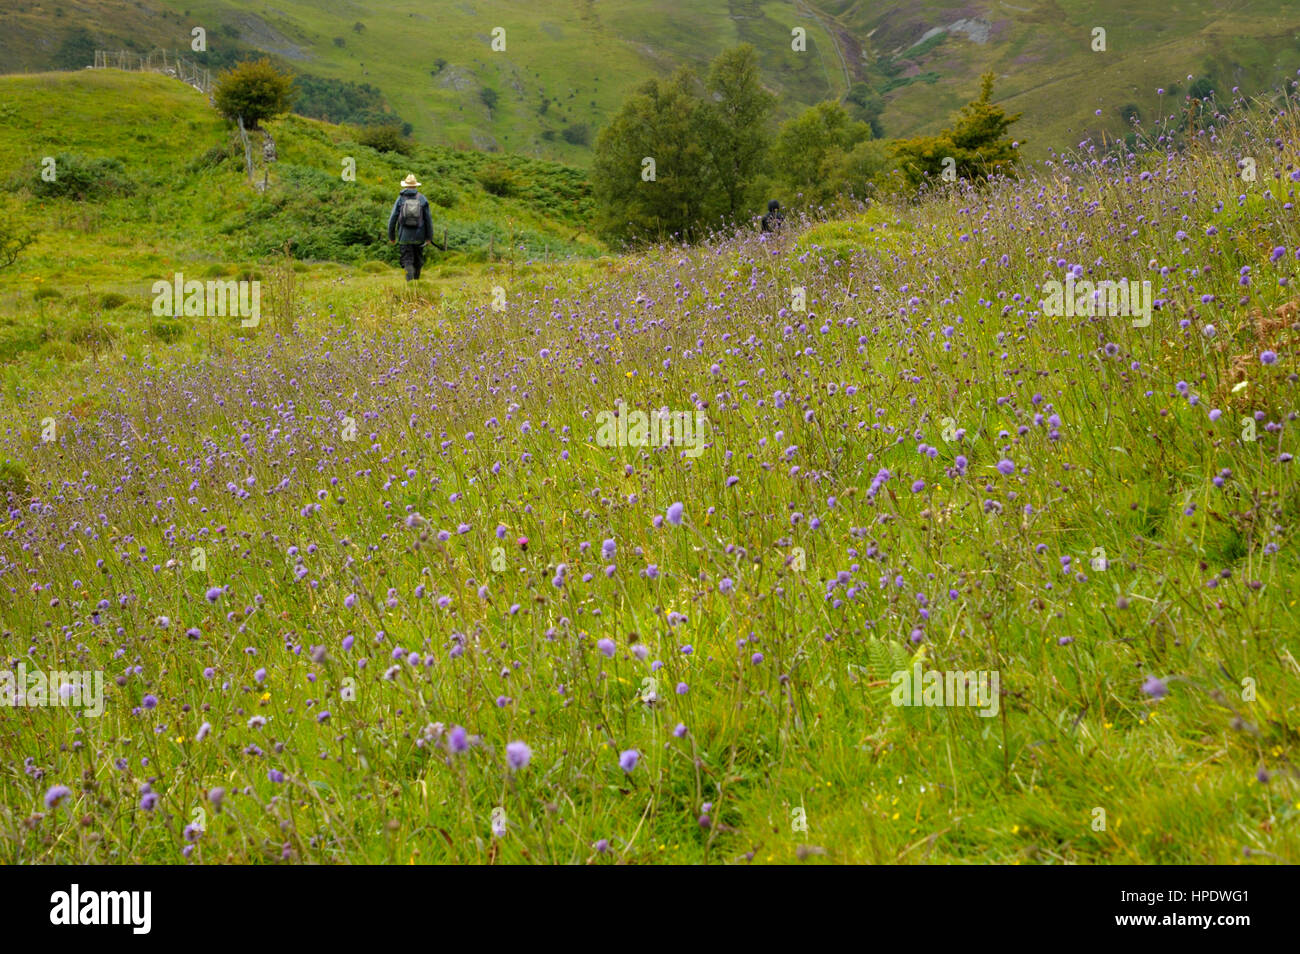 A Man with a Rucksack walking away fro a dense patch of Devil's-bit Scabious, Succisa pratensis - Stock Image